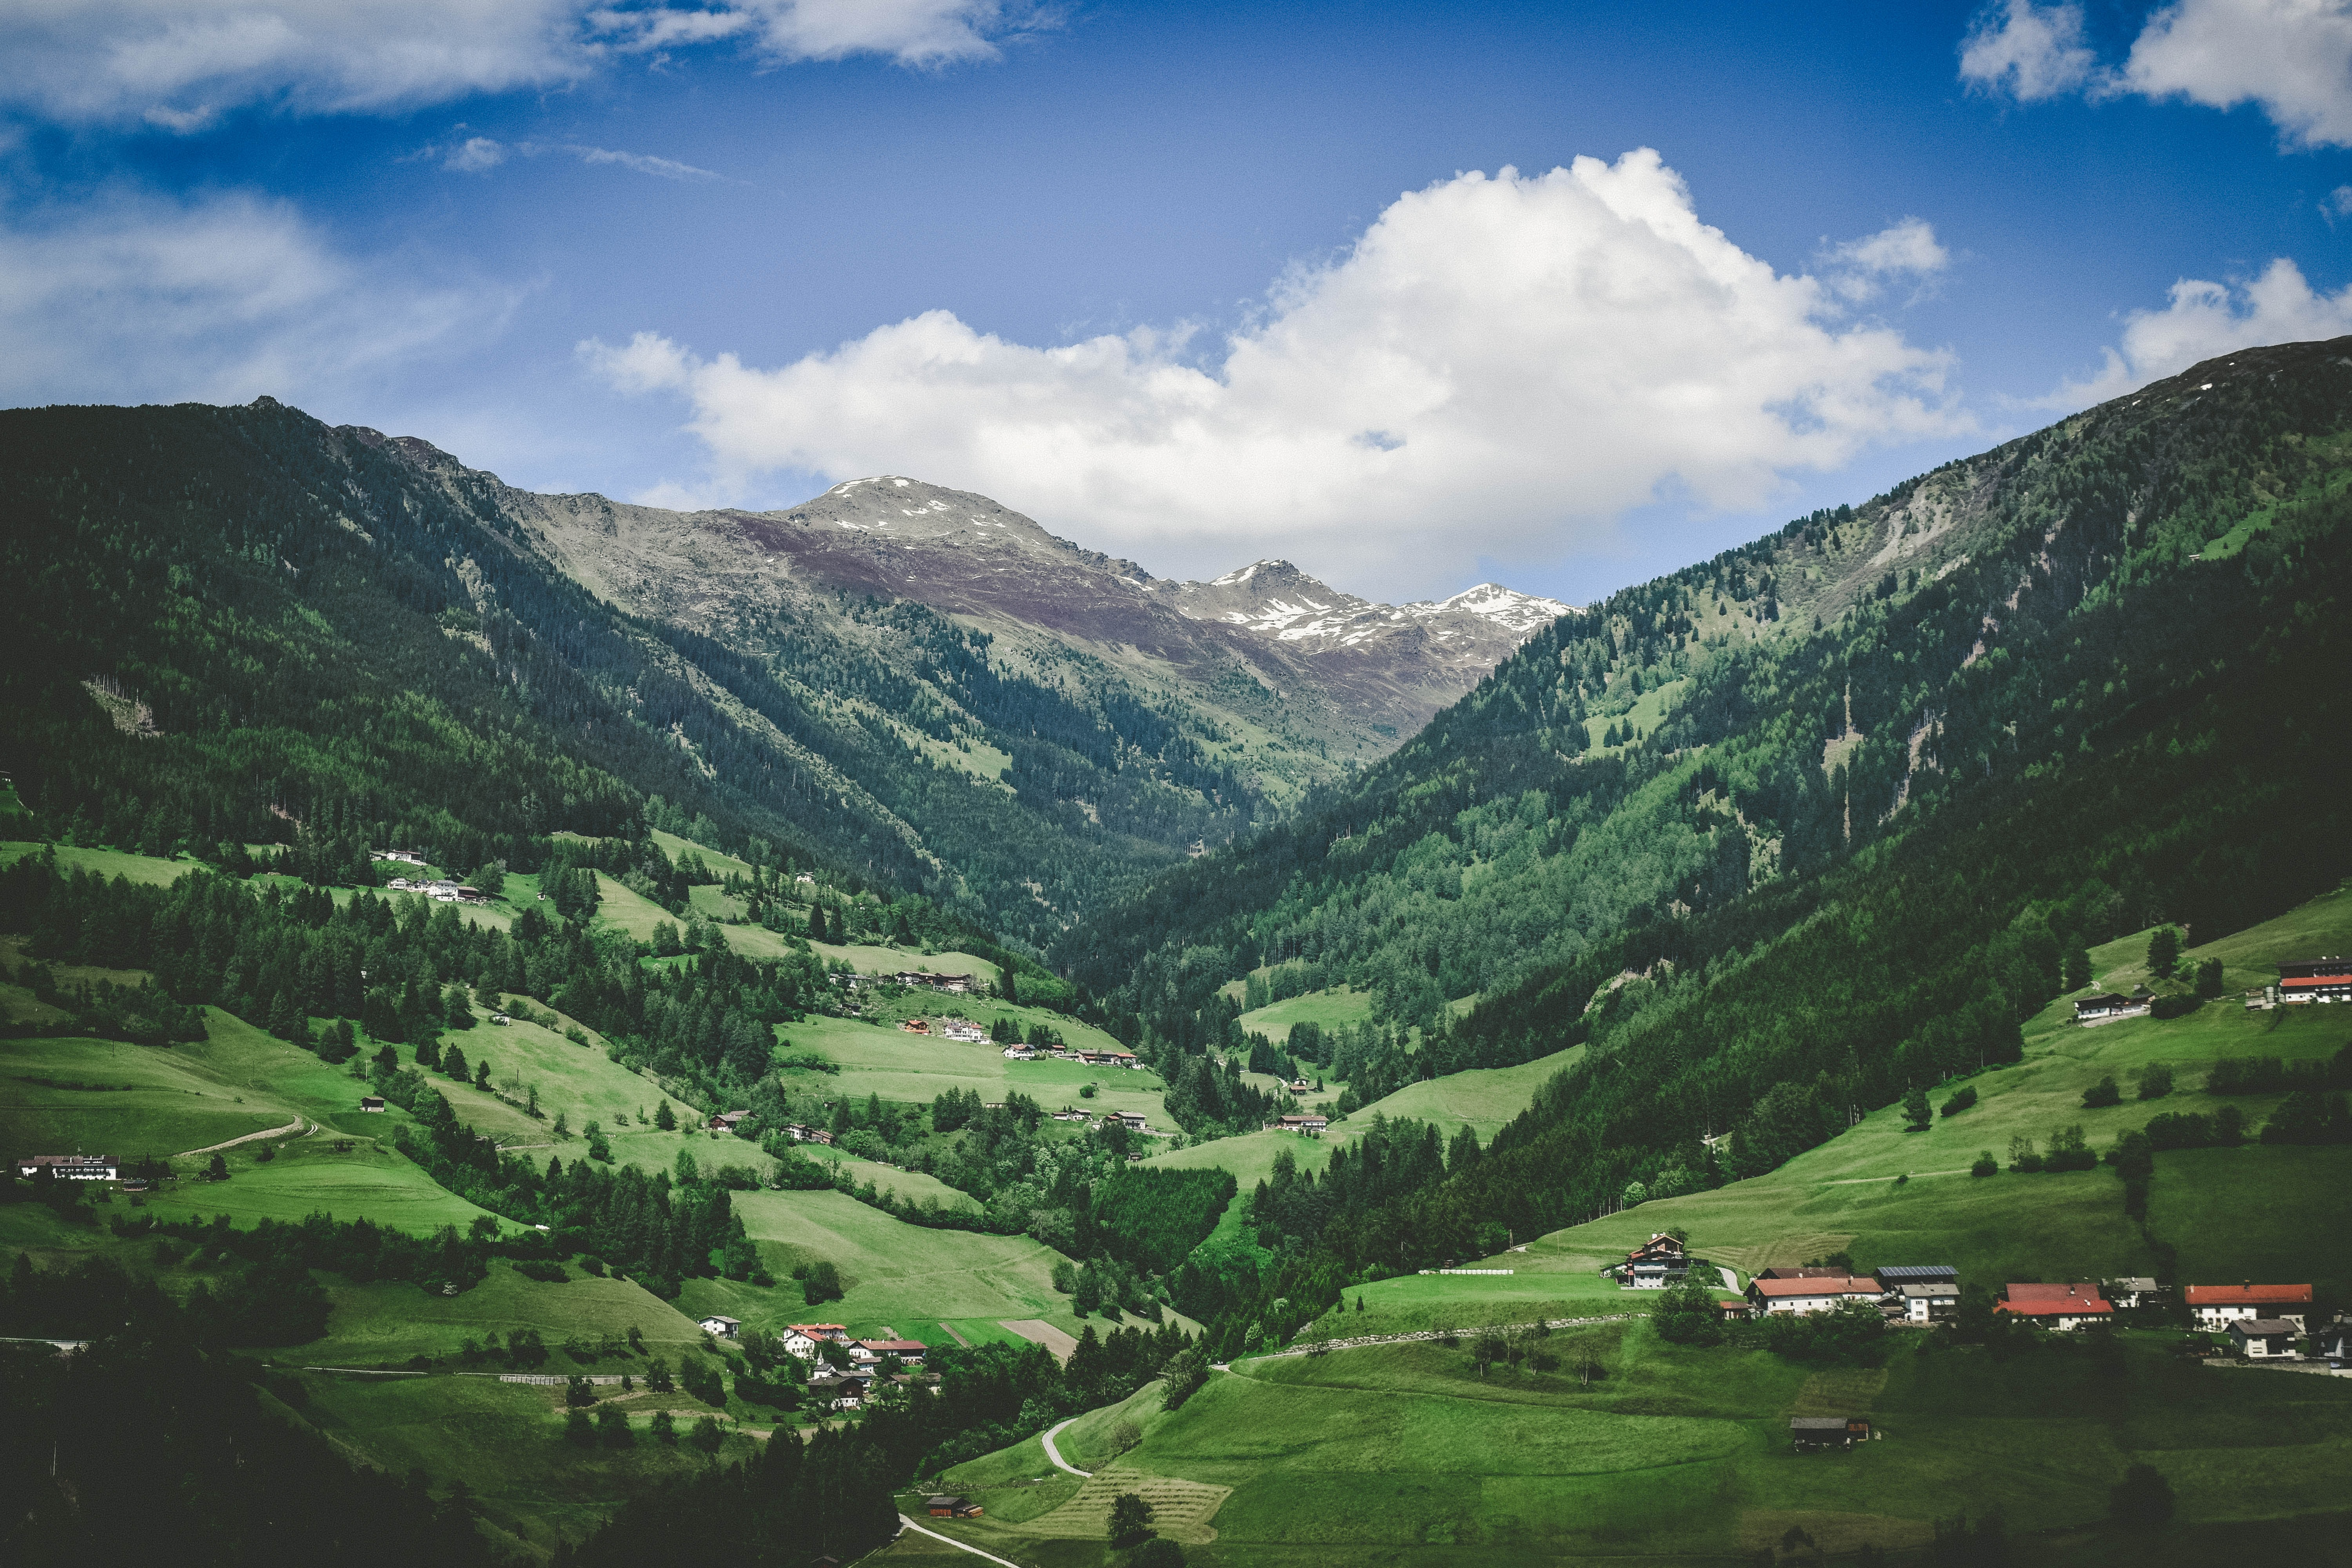 Sparse buildings in a green mountain valley in Austria